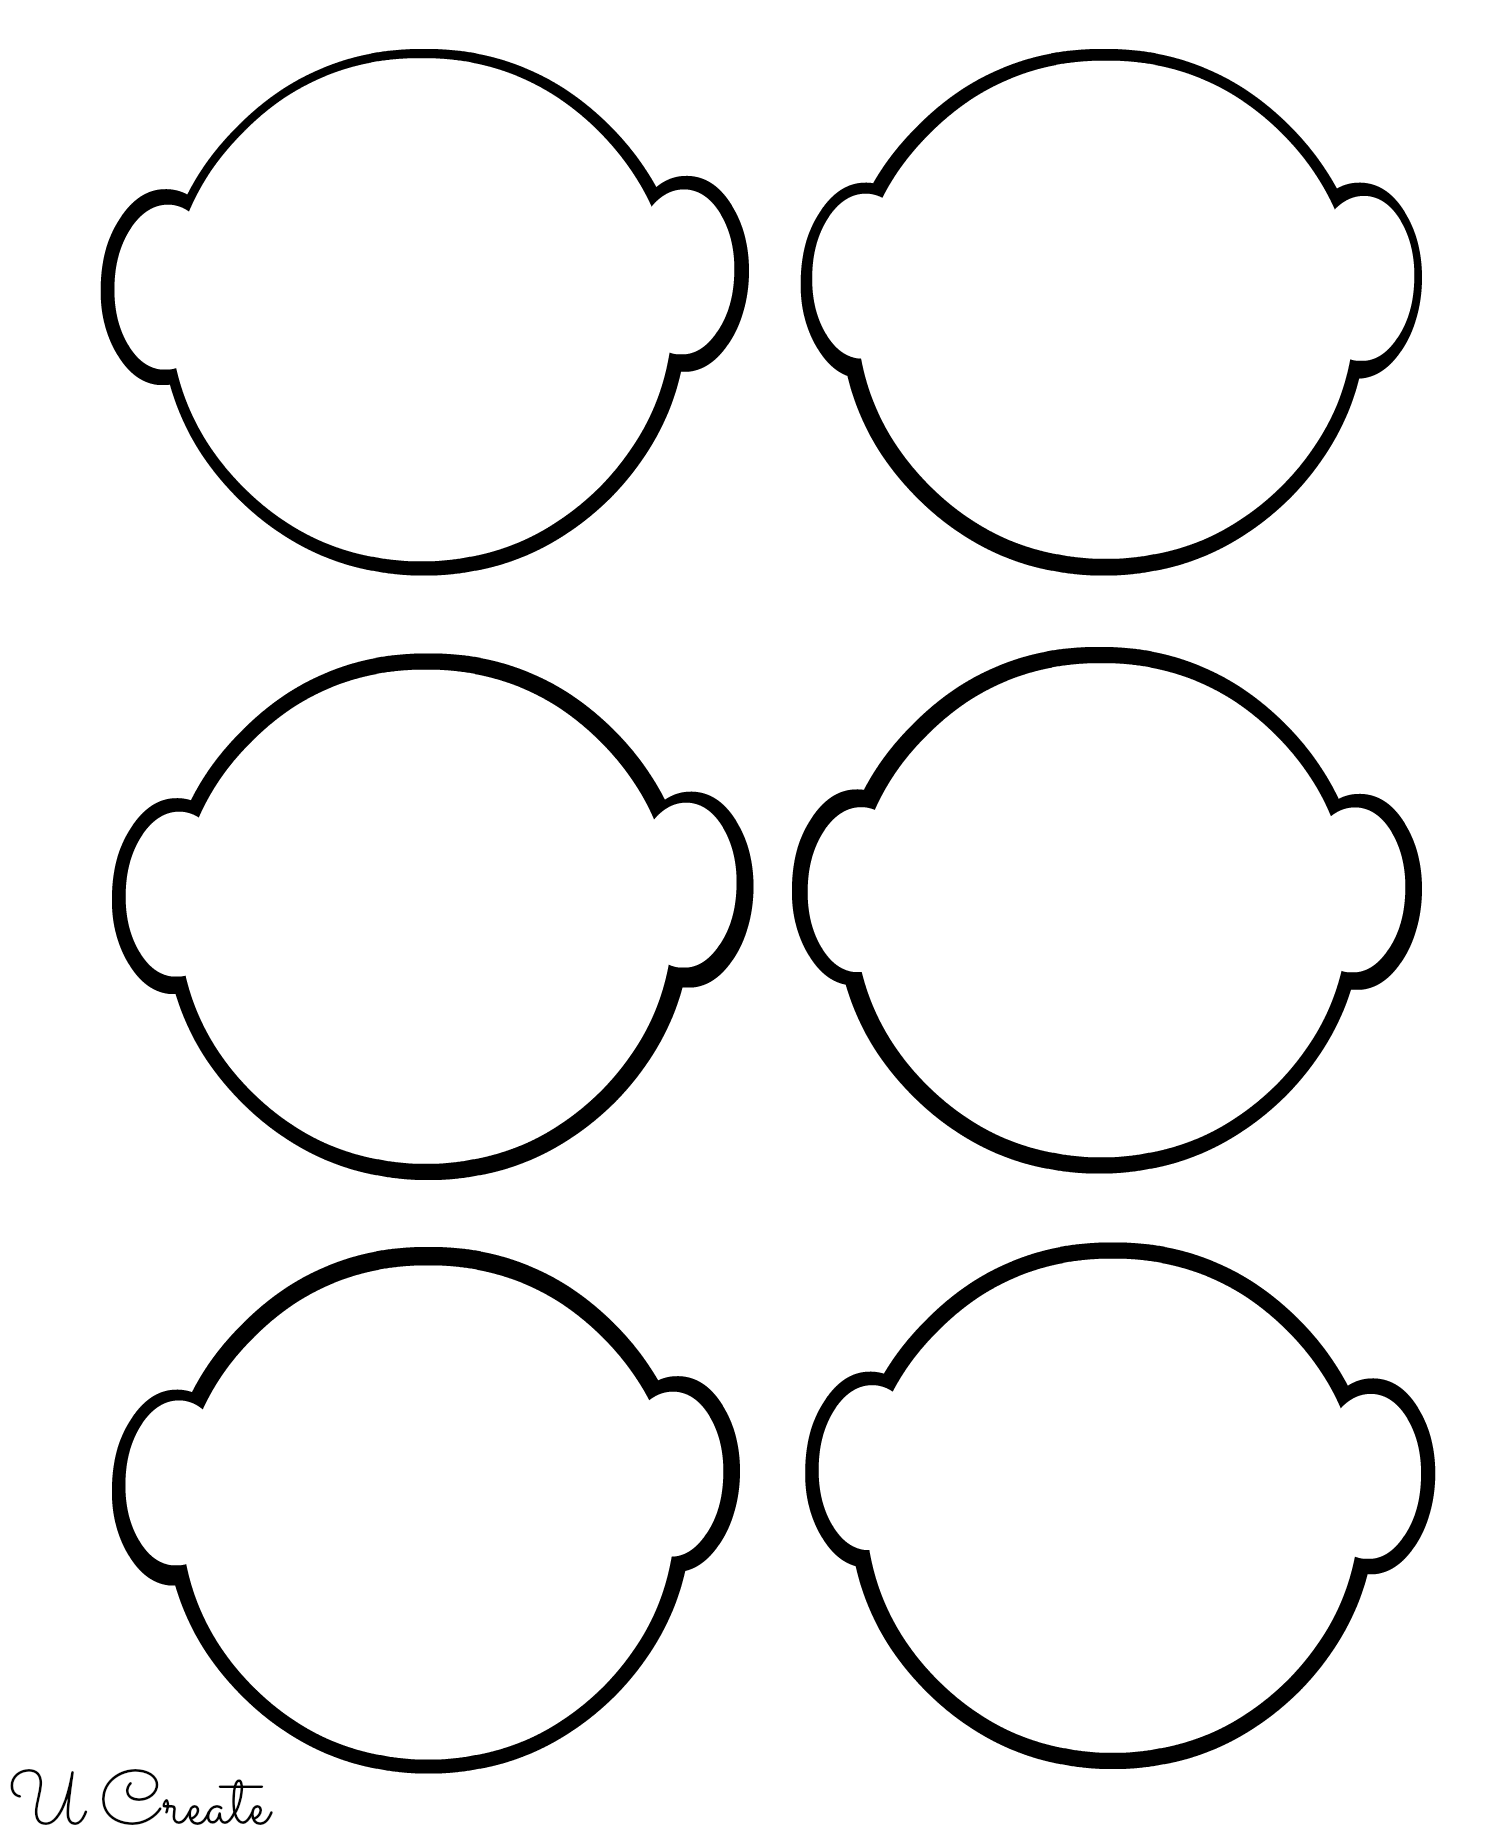 Blank Faces For Children To Color Their Family Members On